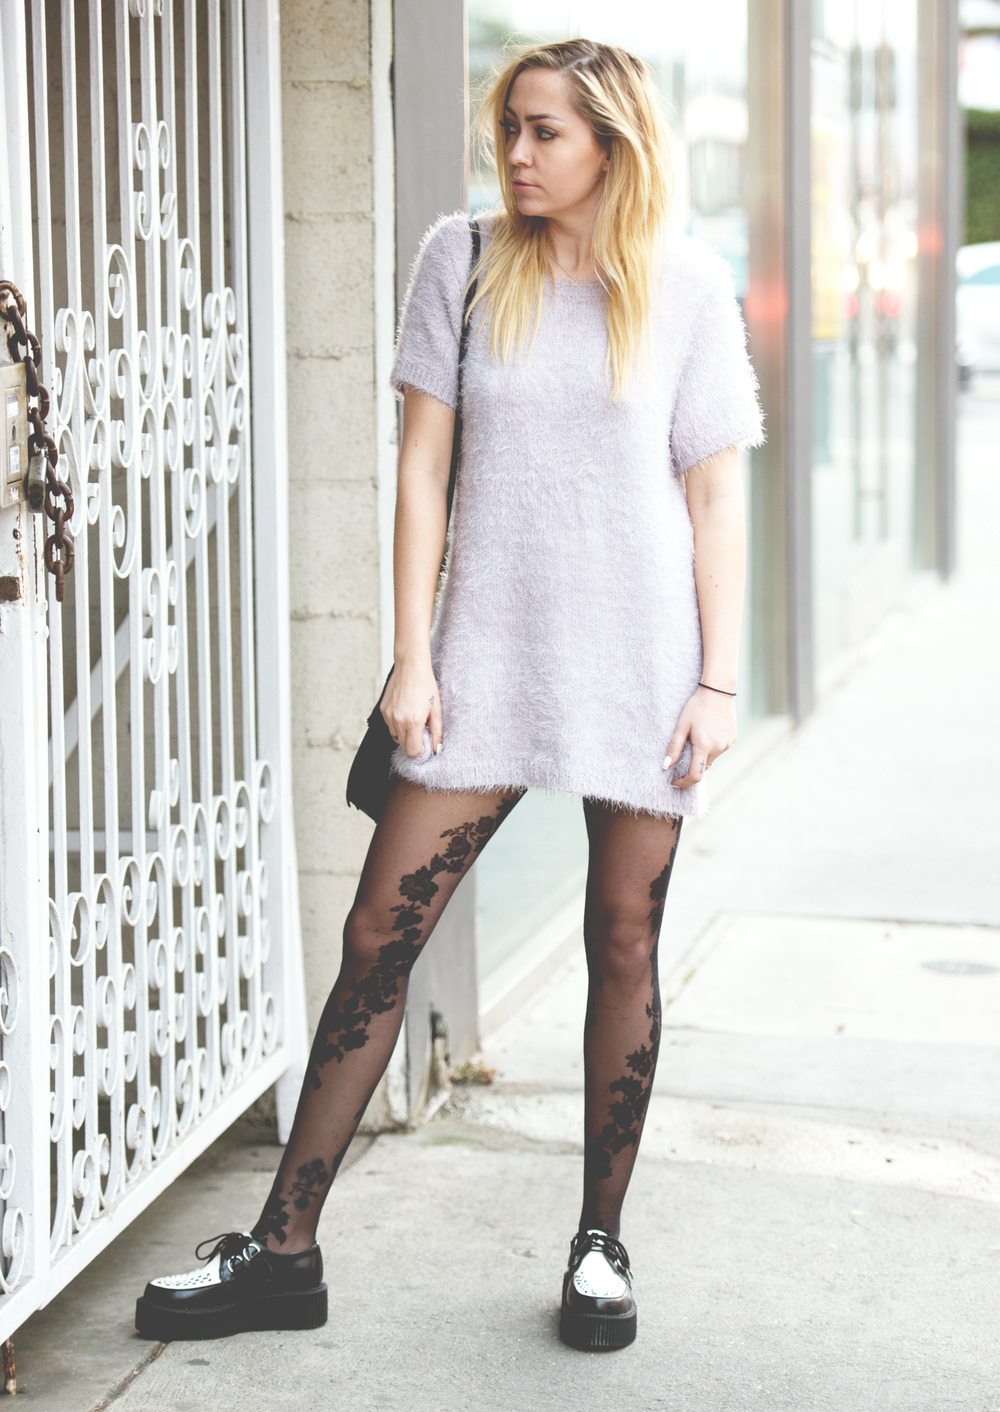 Dress - For Love & Lemons  | Tights - |  Shoes - T.U.K.  | Bag - Gerard Darrel || photos by  Piper Rastello